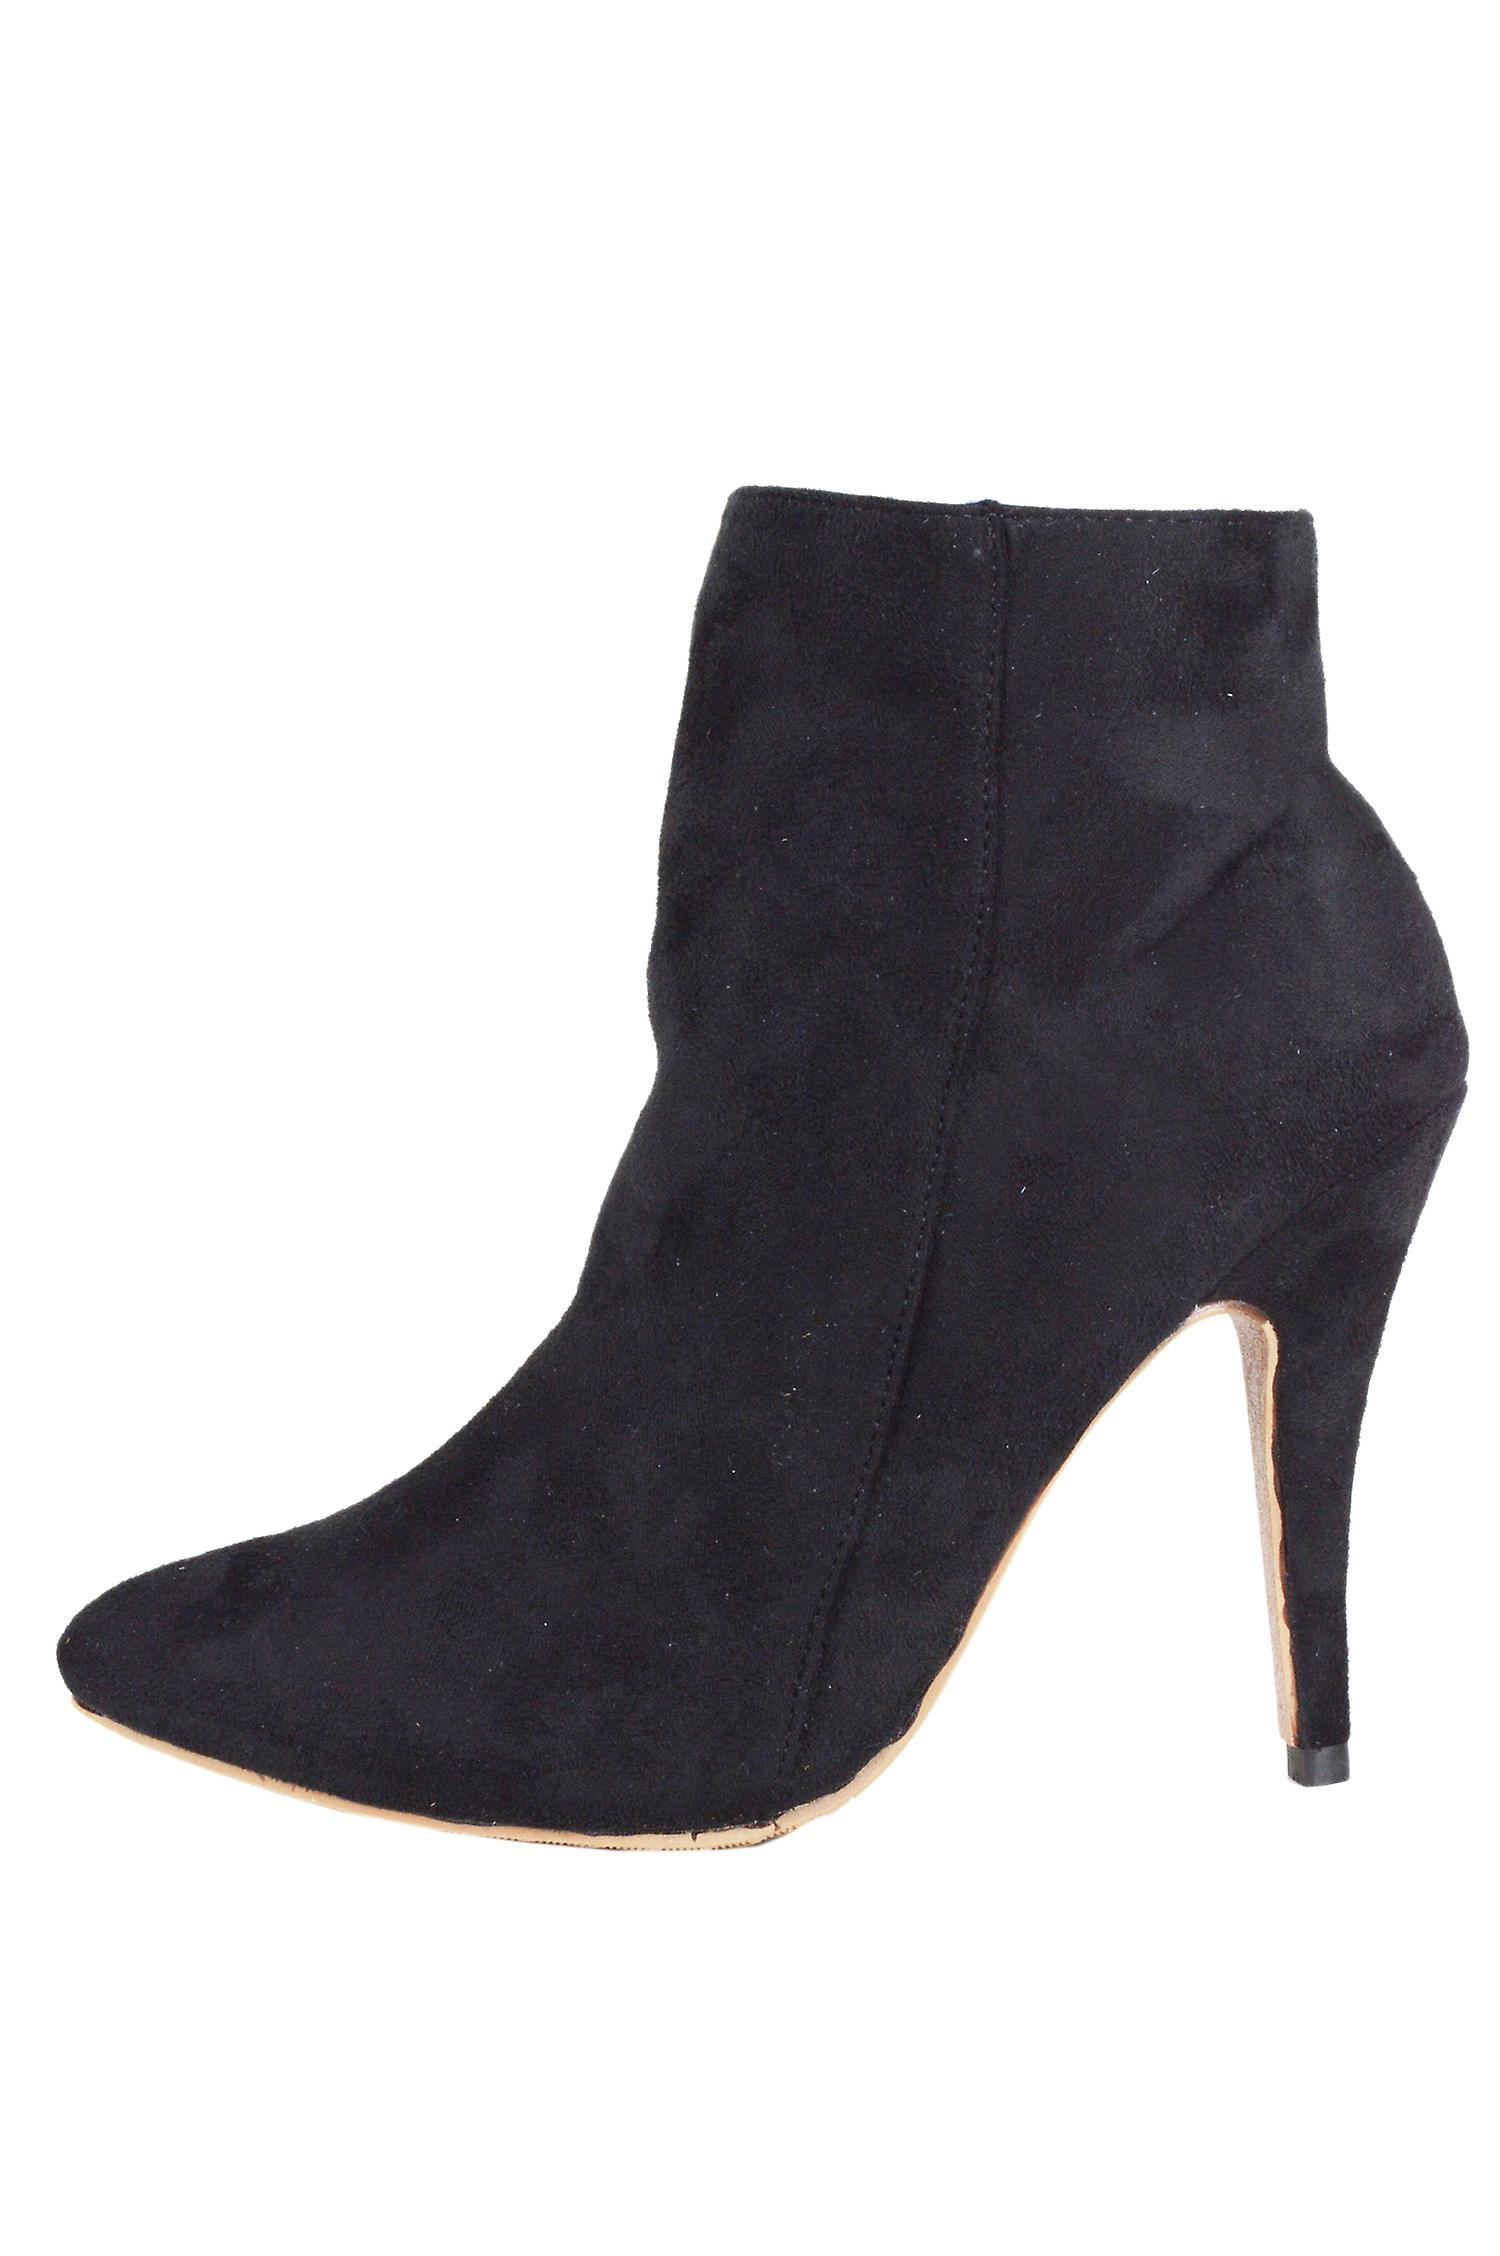 LMS Black Suede High Heel Pointed Zip Up Ankle Boot